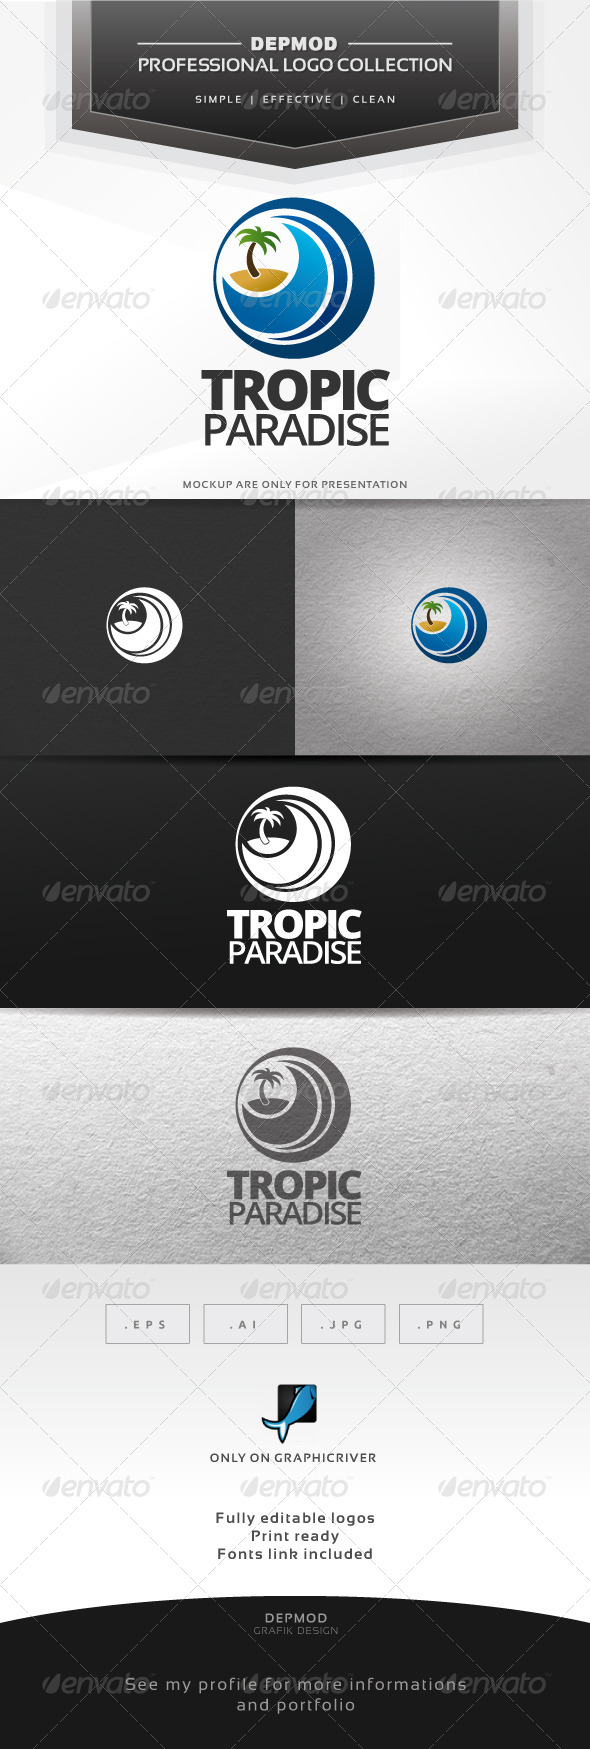 GraphicRiver Tropic Paradise Logo 6725850